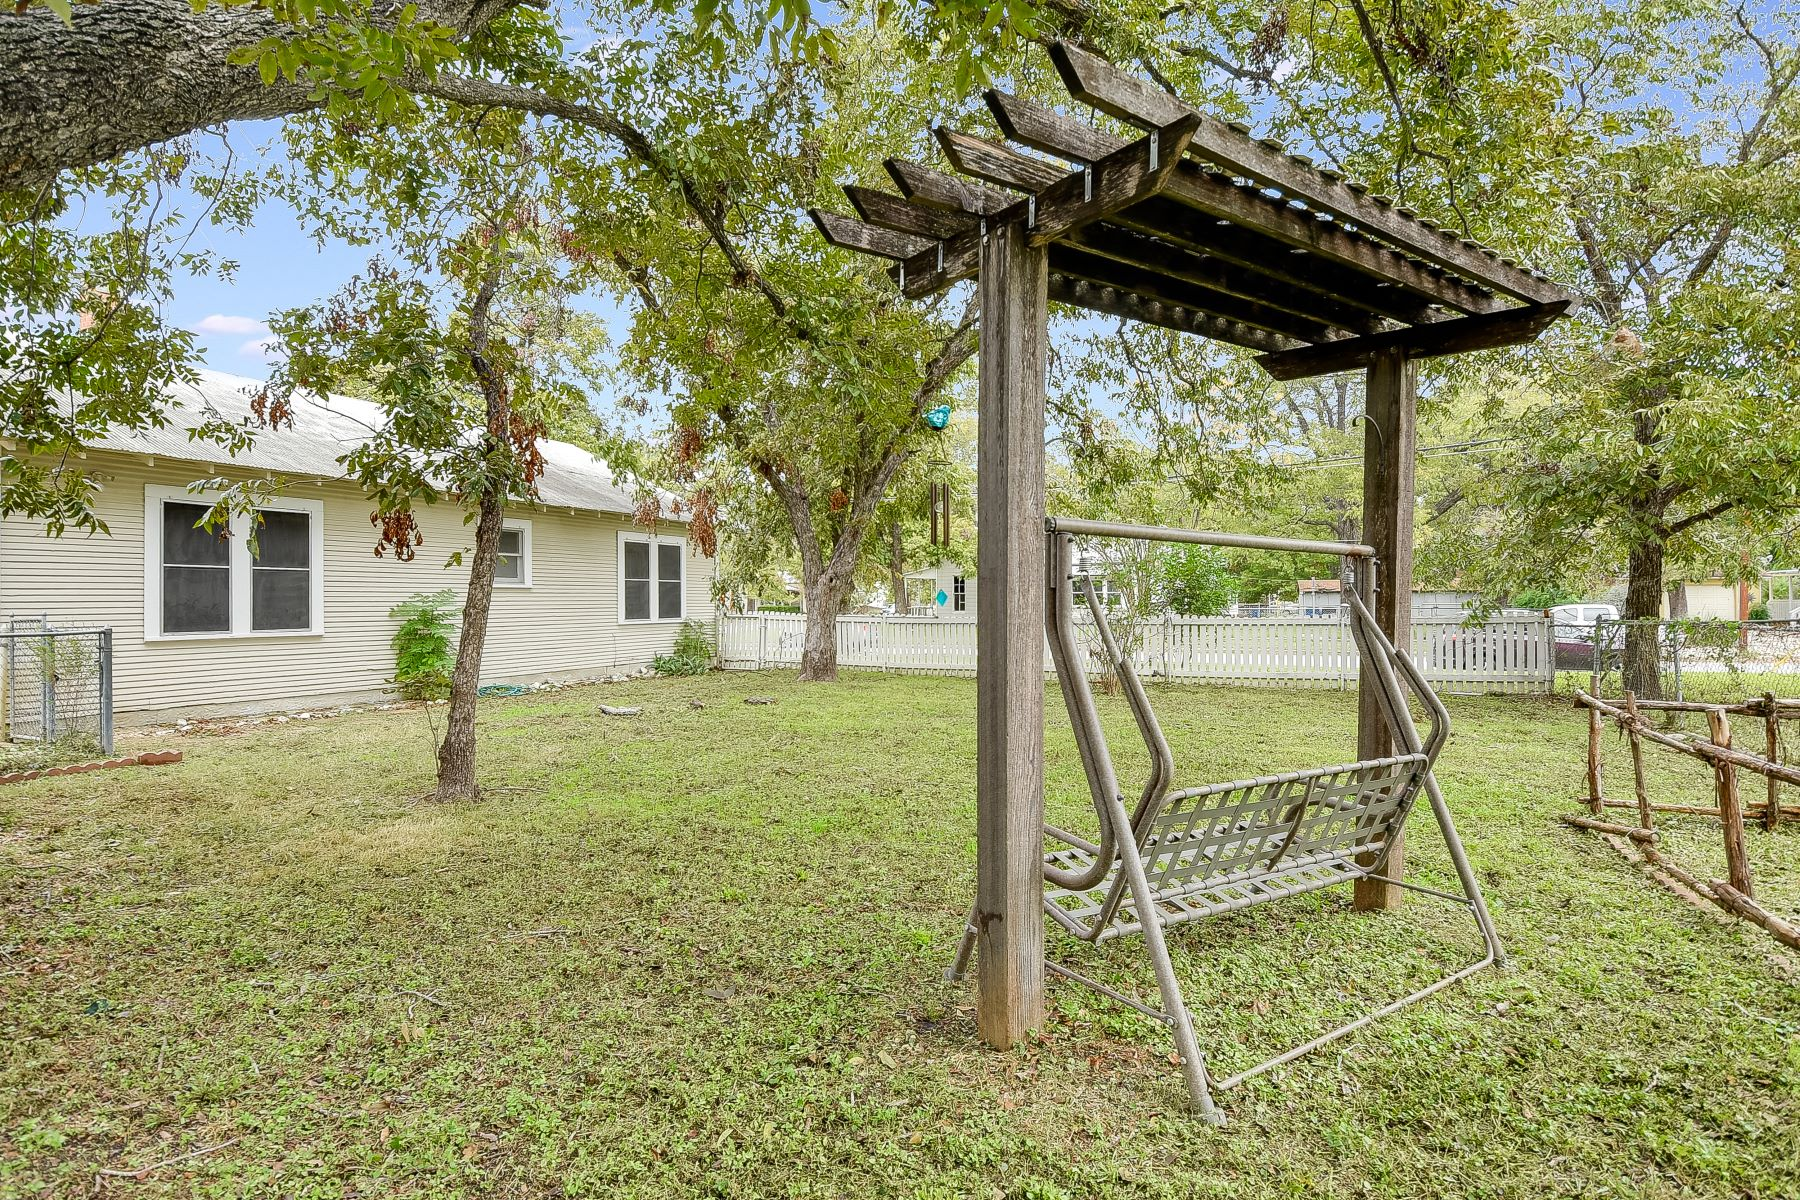 Additional photo for property listing at Craftsman Home in San Antonio 197 North Sycamore Ave New Braunfels, Texas 78130 Estados Unidos